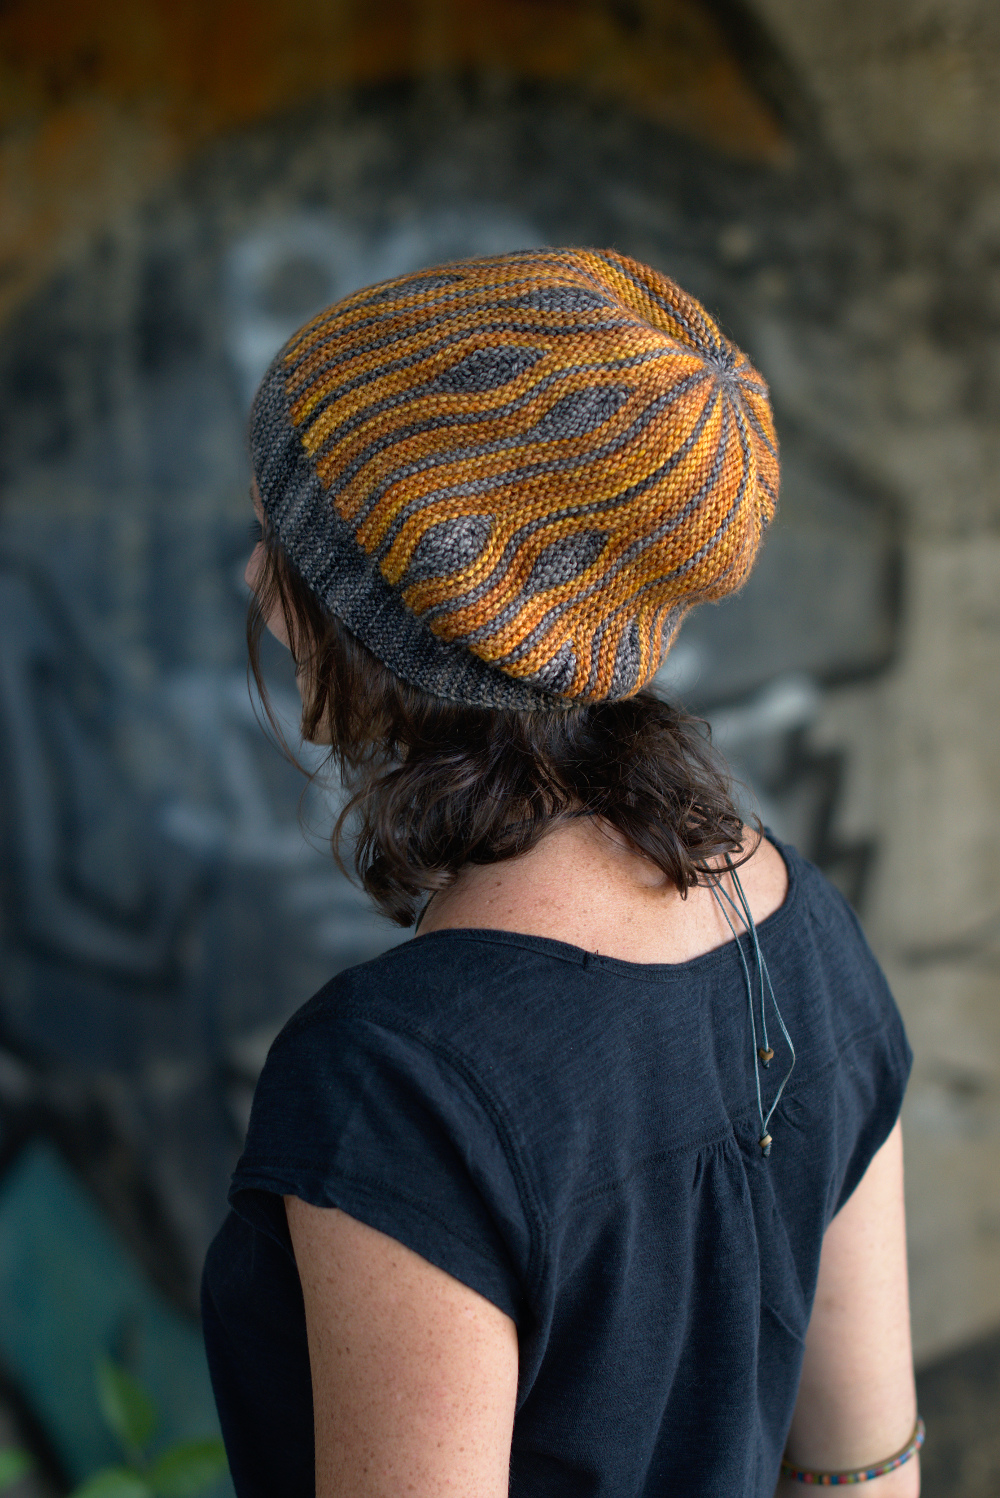 Korra sideways knit short row colourwork hand knitted Hat pattern